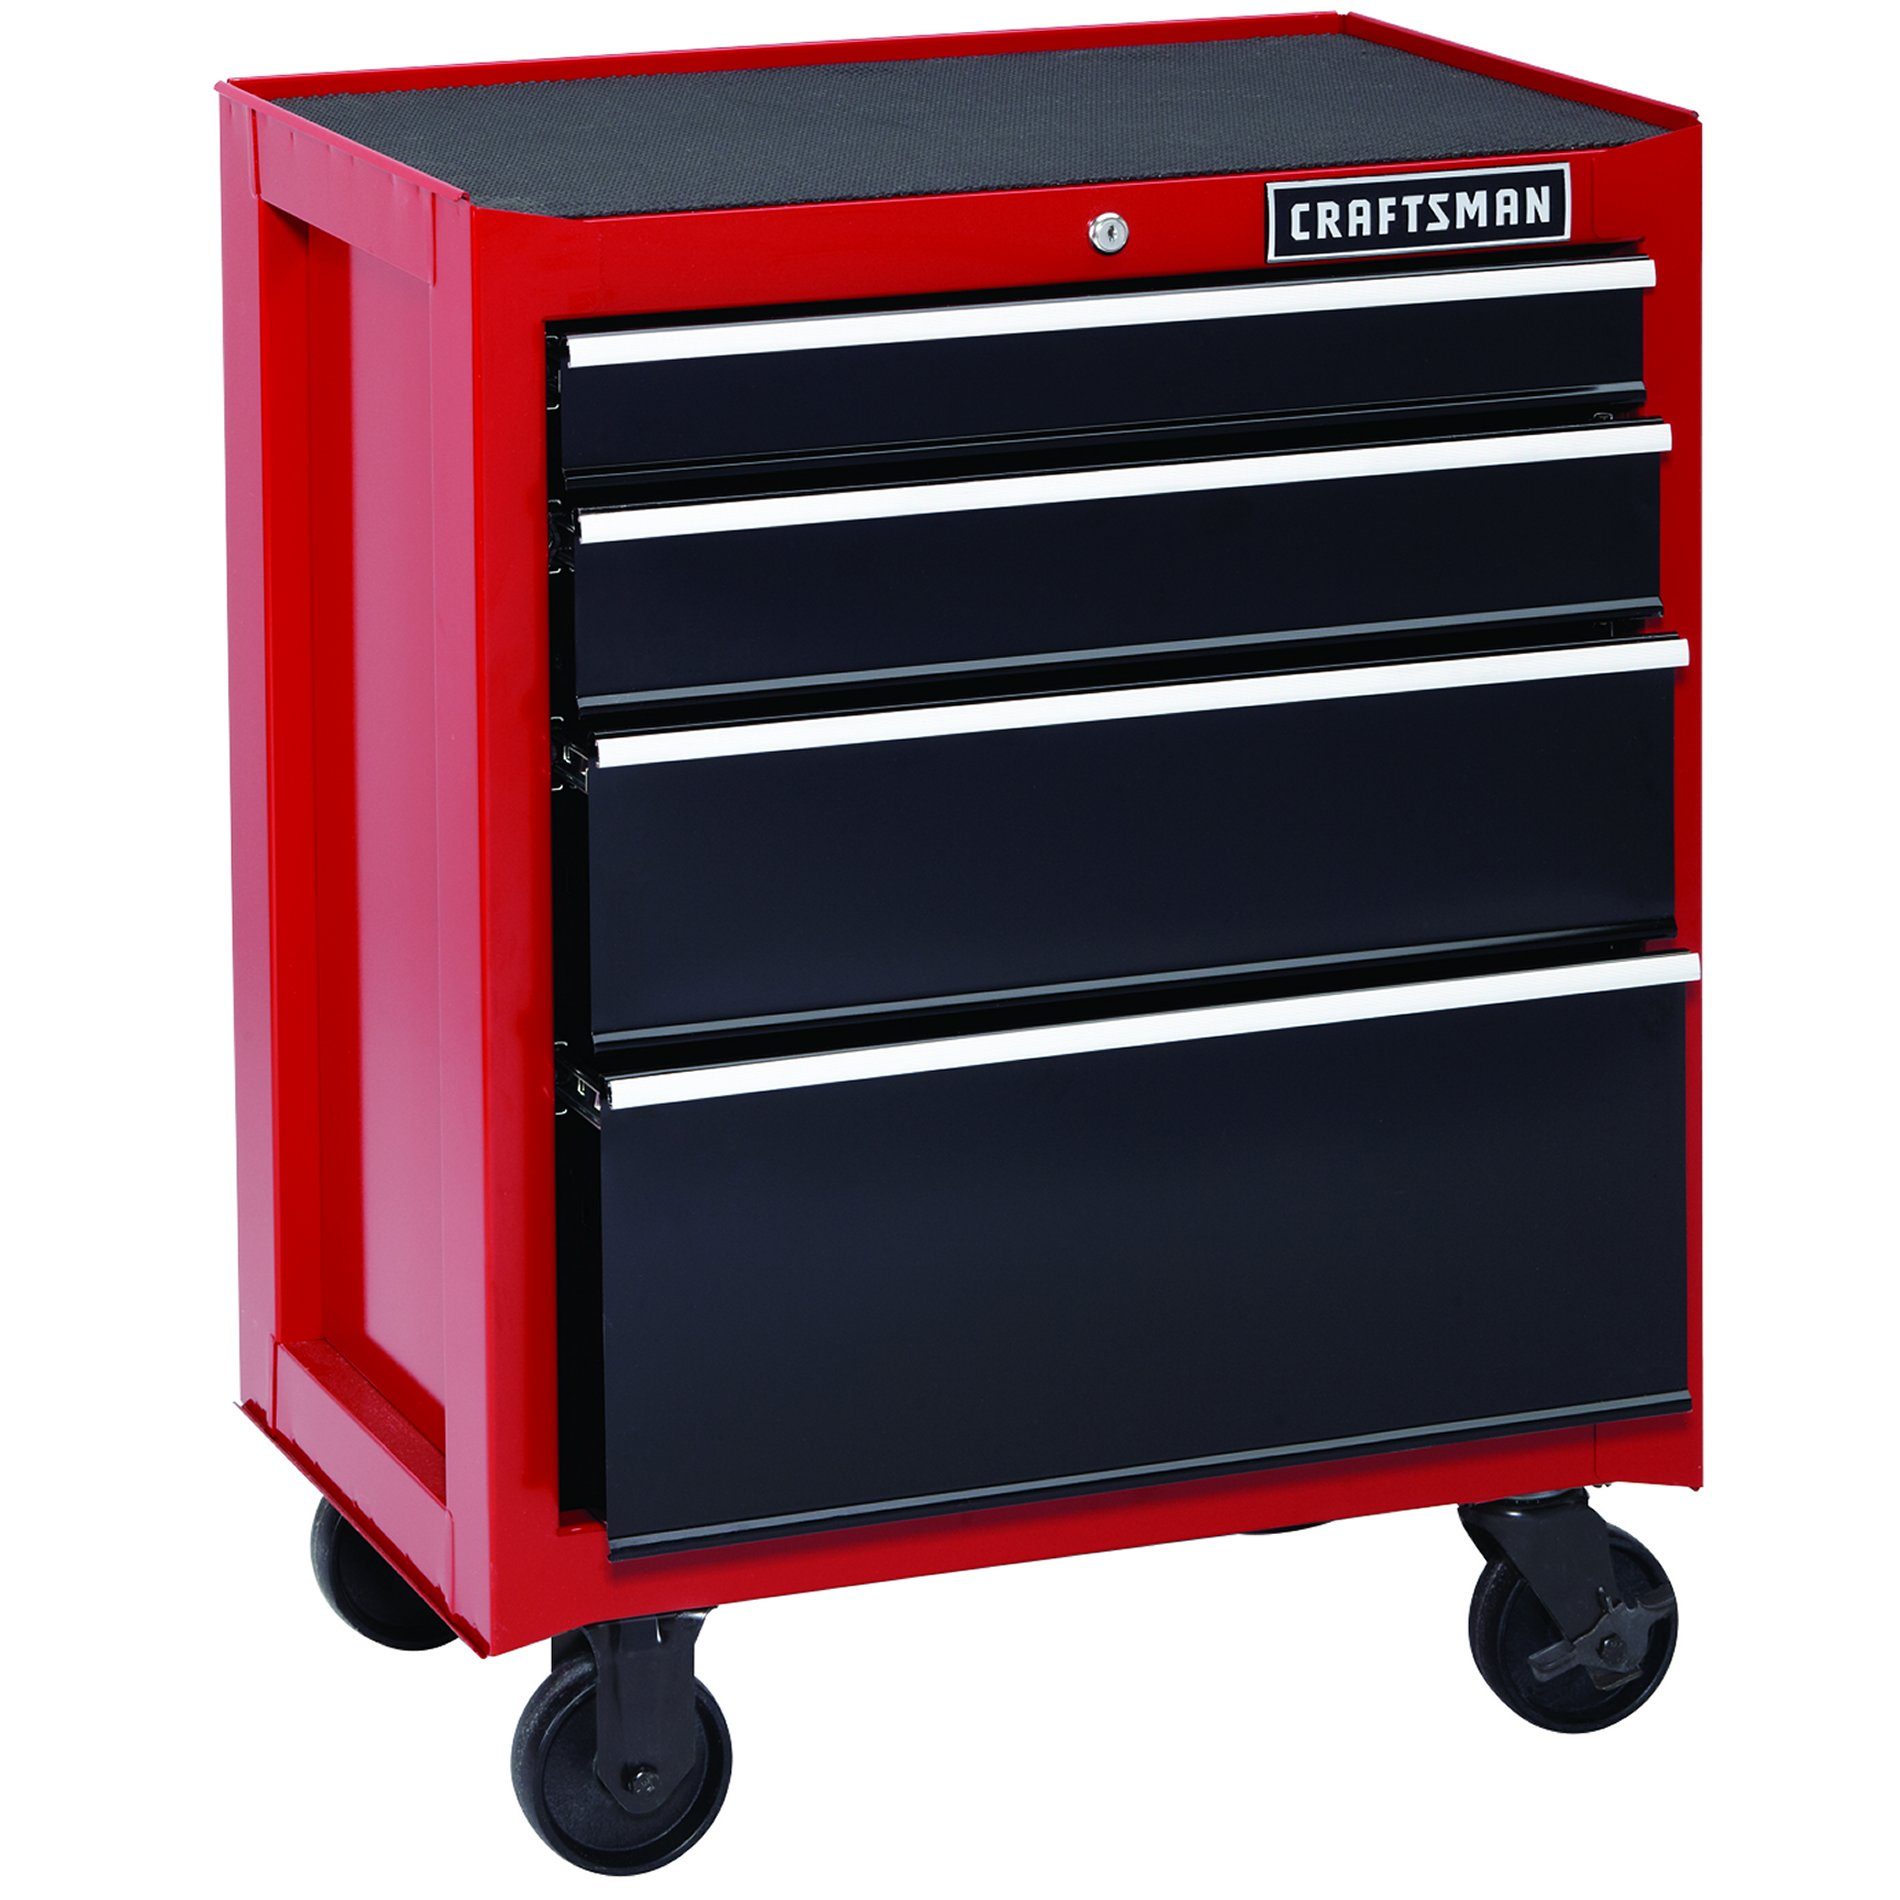 "Craftsman 26"""" 4-Drawer Heavy-Duty Rolling Cabinet - Red"